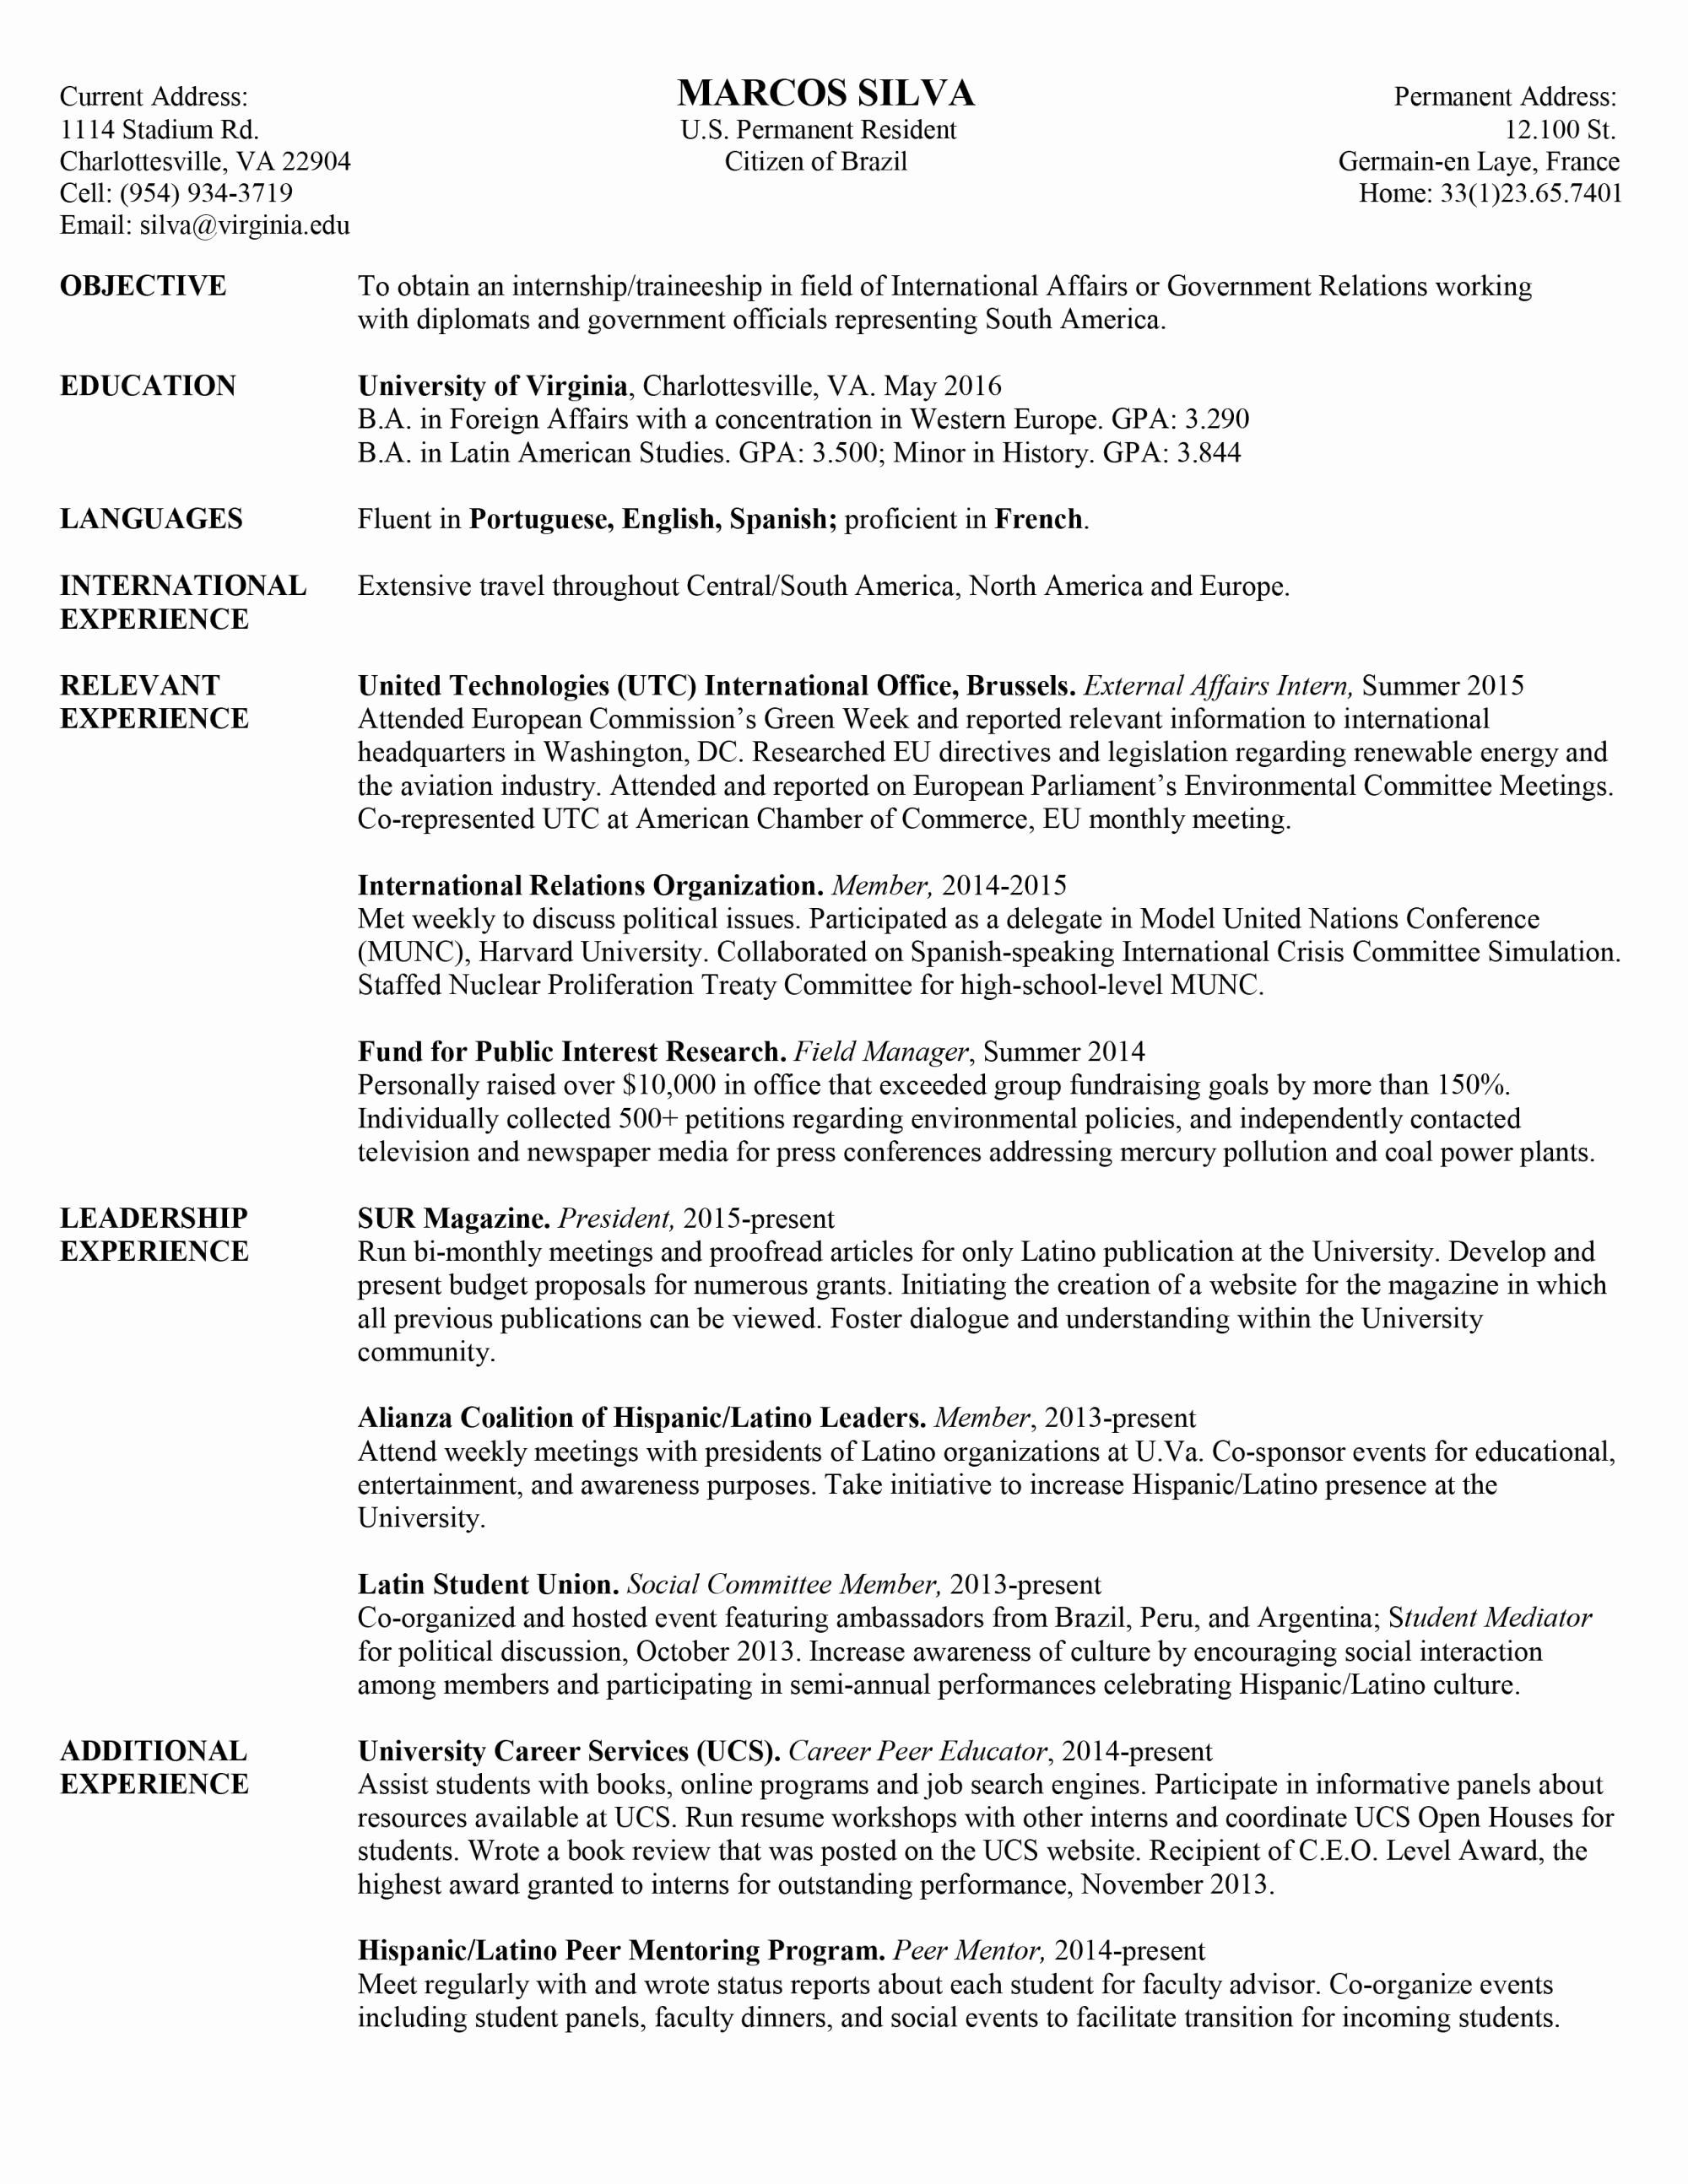 Chronological Resume Template Pdf - Modeling Portfolio Sample Pdf New Resume Model Resume Template